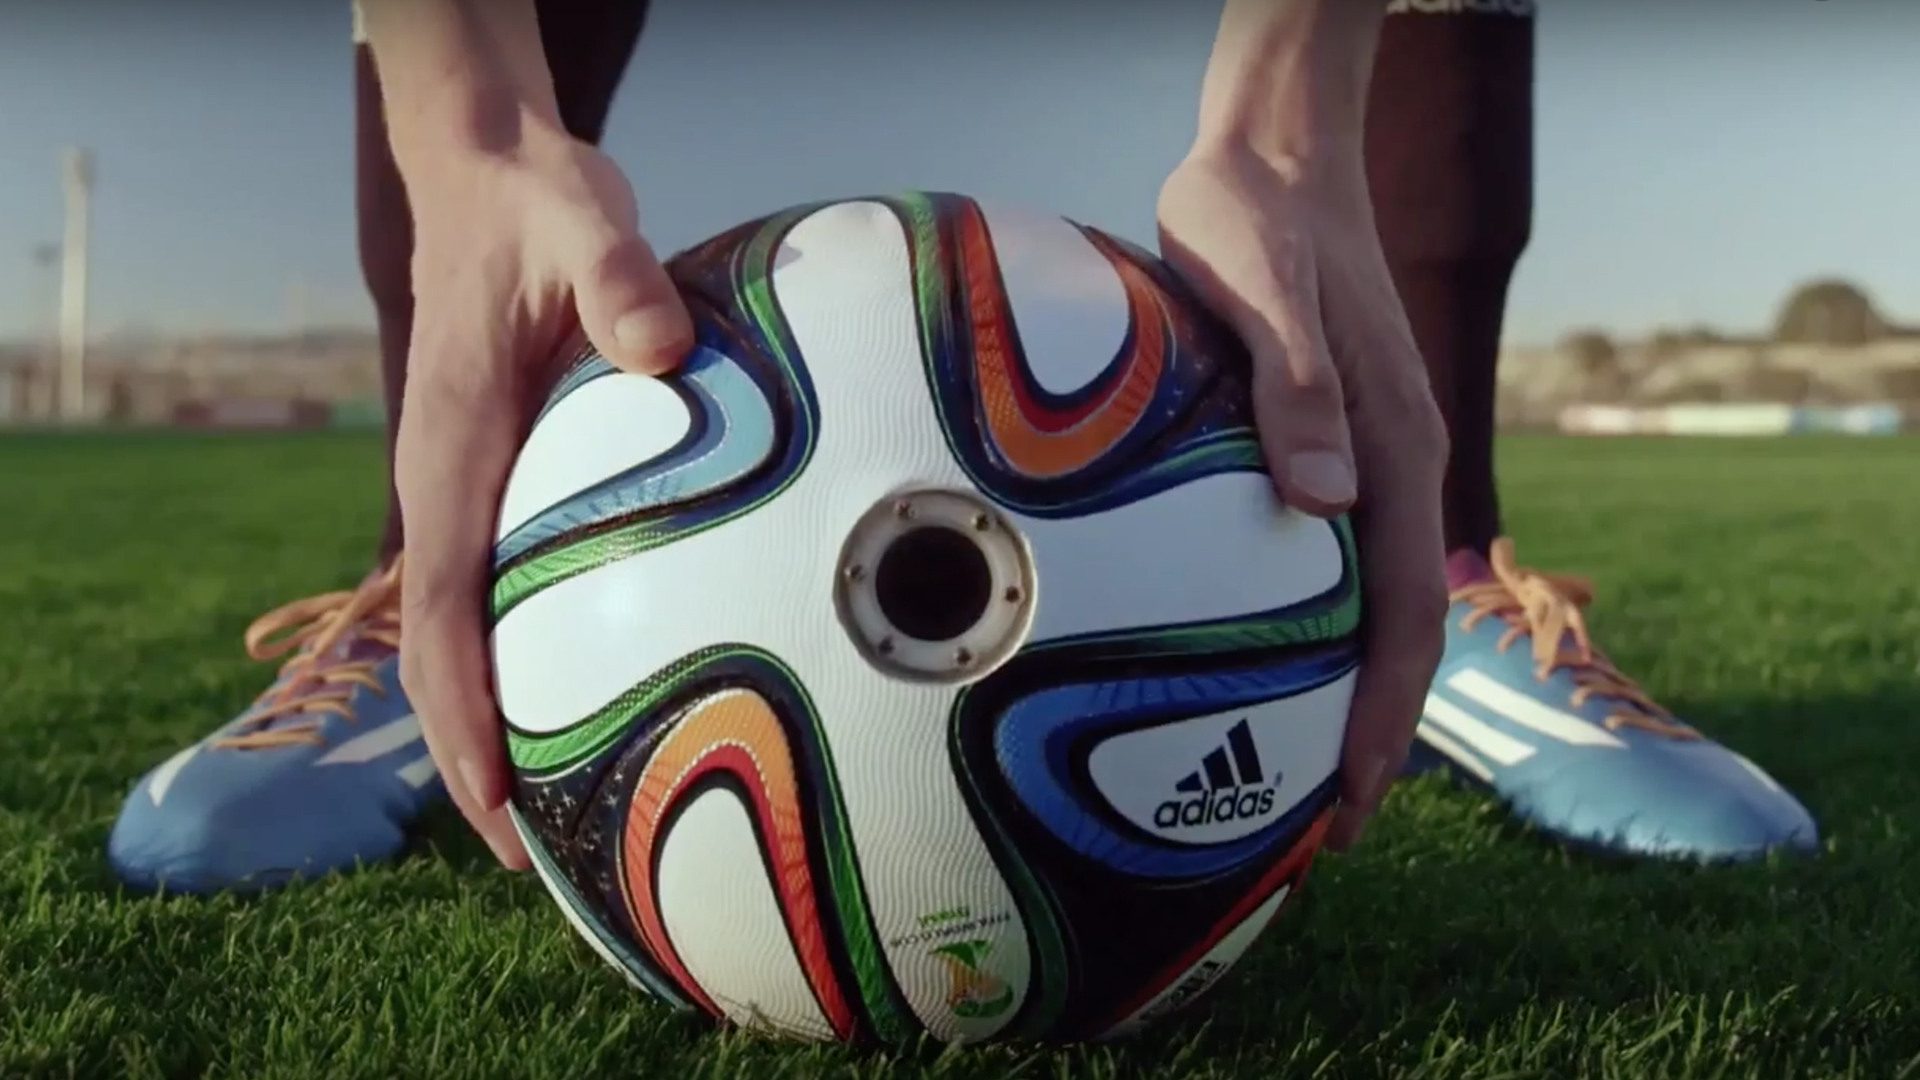 Adidas 'Brazuca around the World'<br><br>Director Felipe Lima<br>Producer Cédric Troadec<br> Production Co Ways & Means